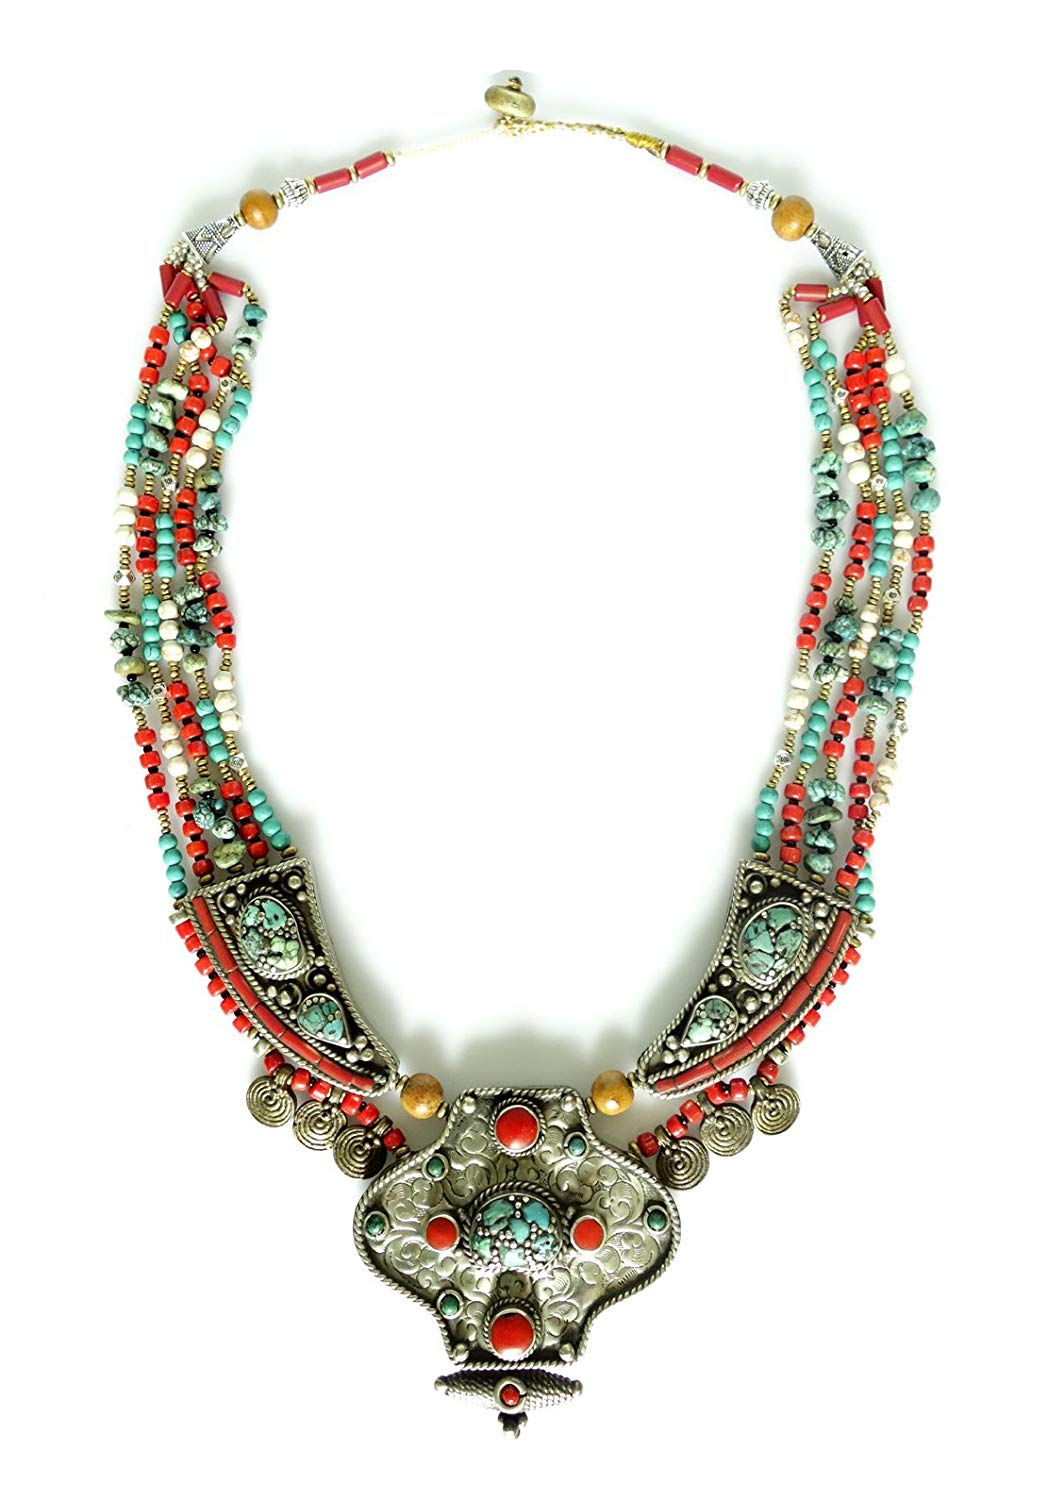 Tibetan Silver BUDDHIST BOHEMIAN LONG MULTIPLE STRAND FASHION NECKLACE WOMAN UNIQUE ETHNIC TRIBAL GYPSY HANDMADE NECKLACE JEWELRY, TURQUOISE CORAL GEMSTONE INLAID TIBETAN SHELL BEADS/NAGA CO